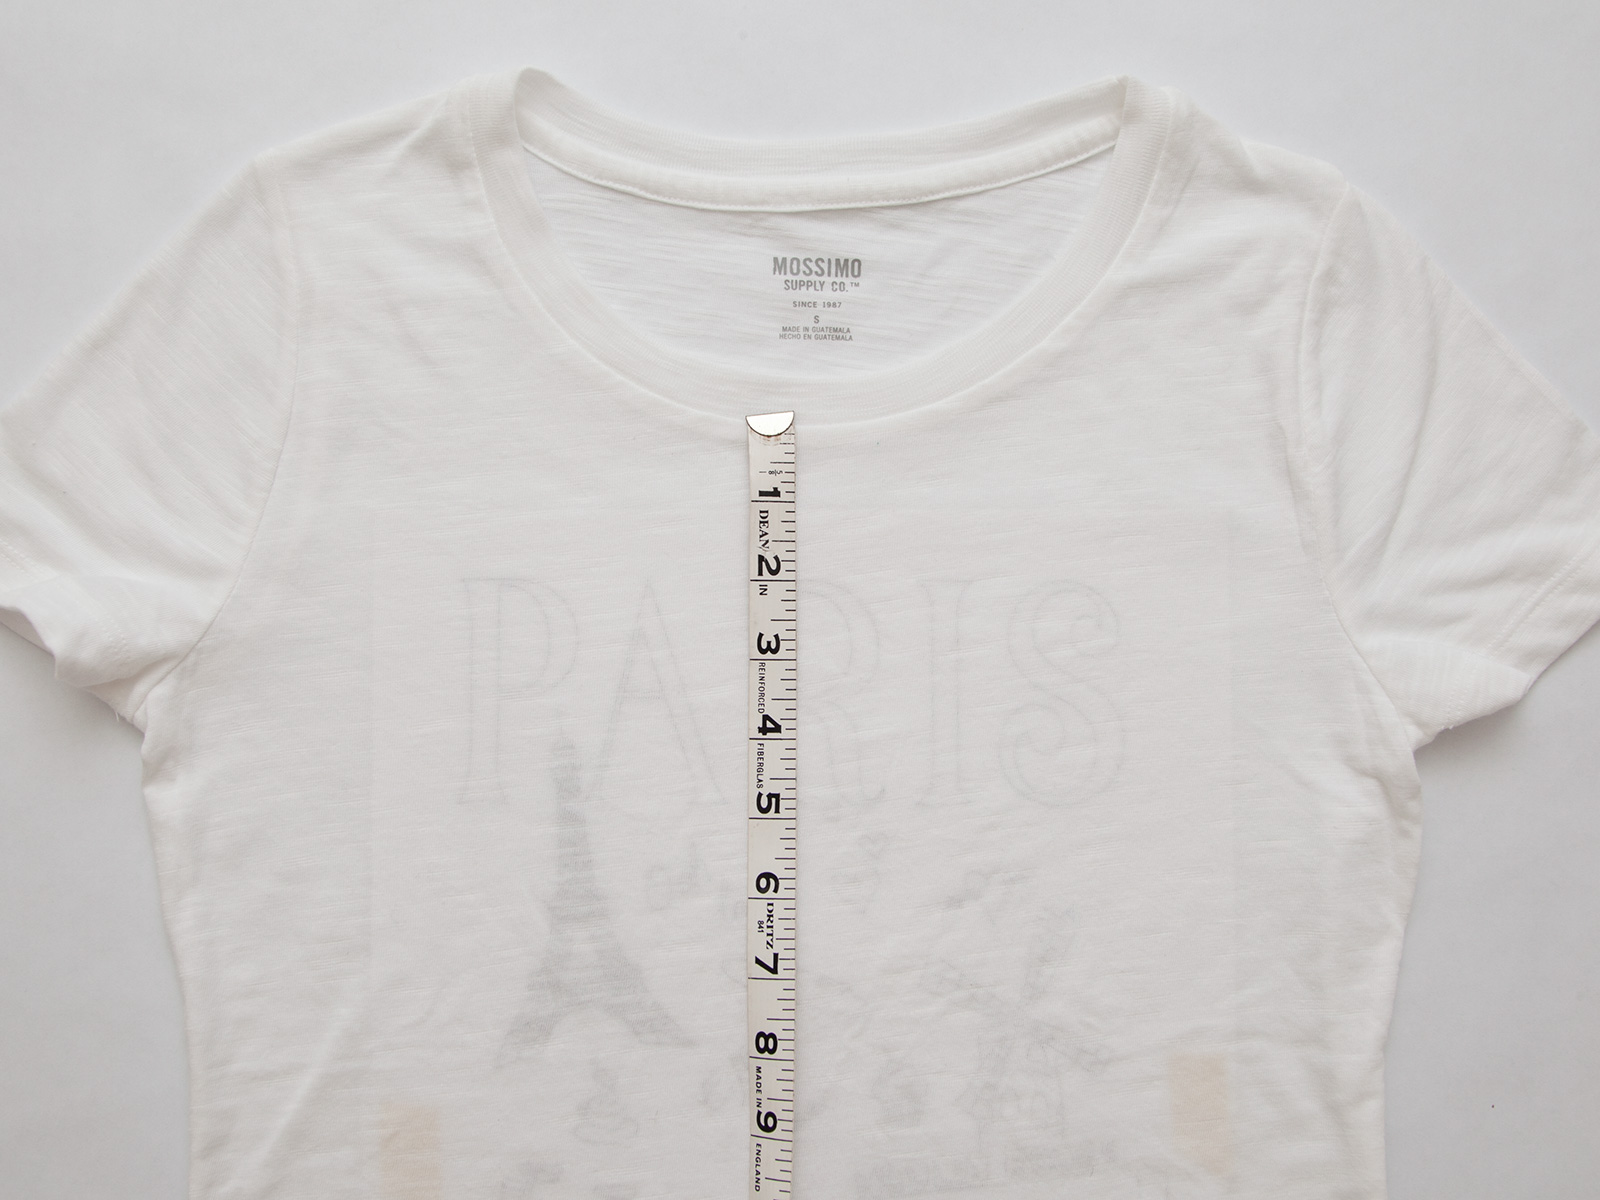 DIY Paris Doodle T-Shirt Measuring by Trinkets in Bloom